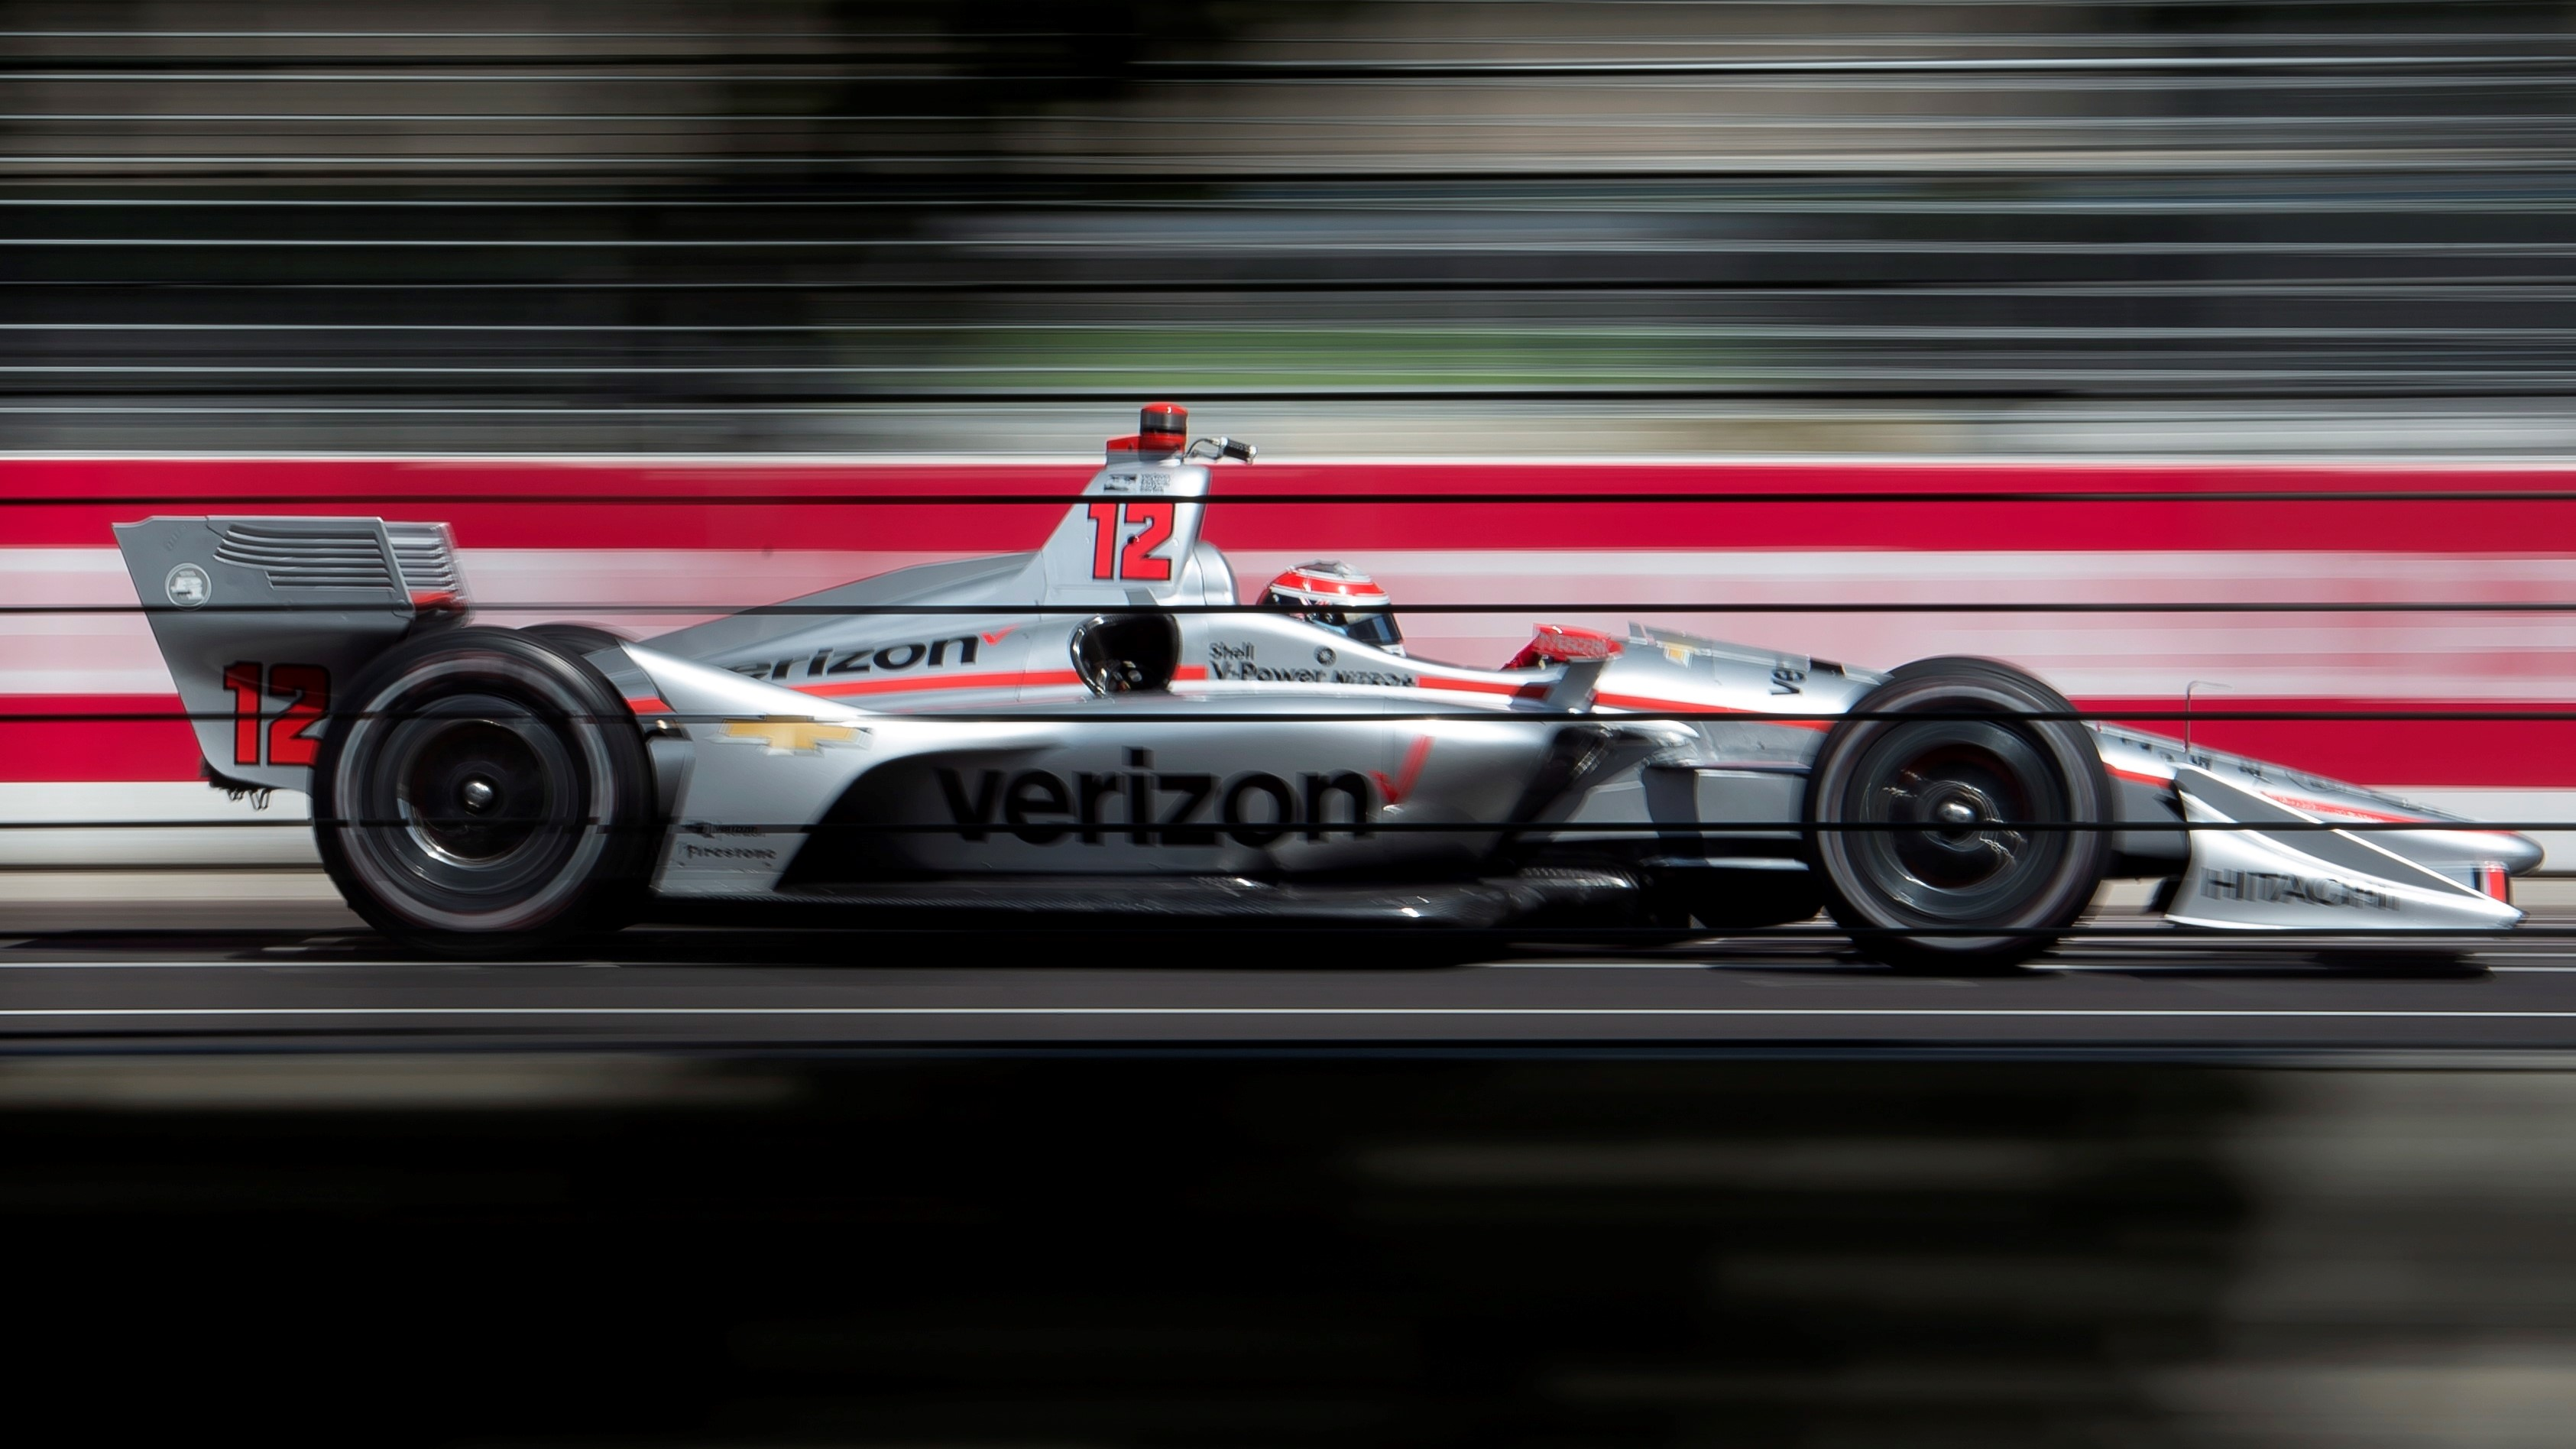 Will Power had a difficult race in Toronto.